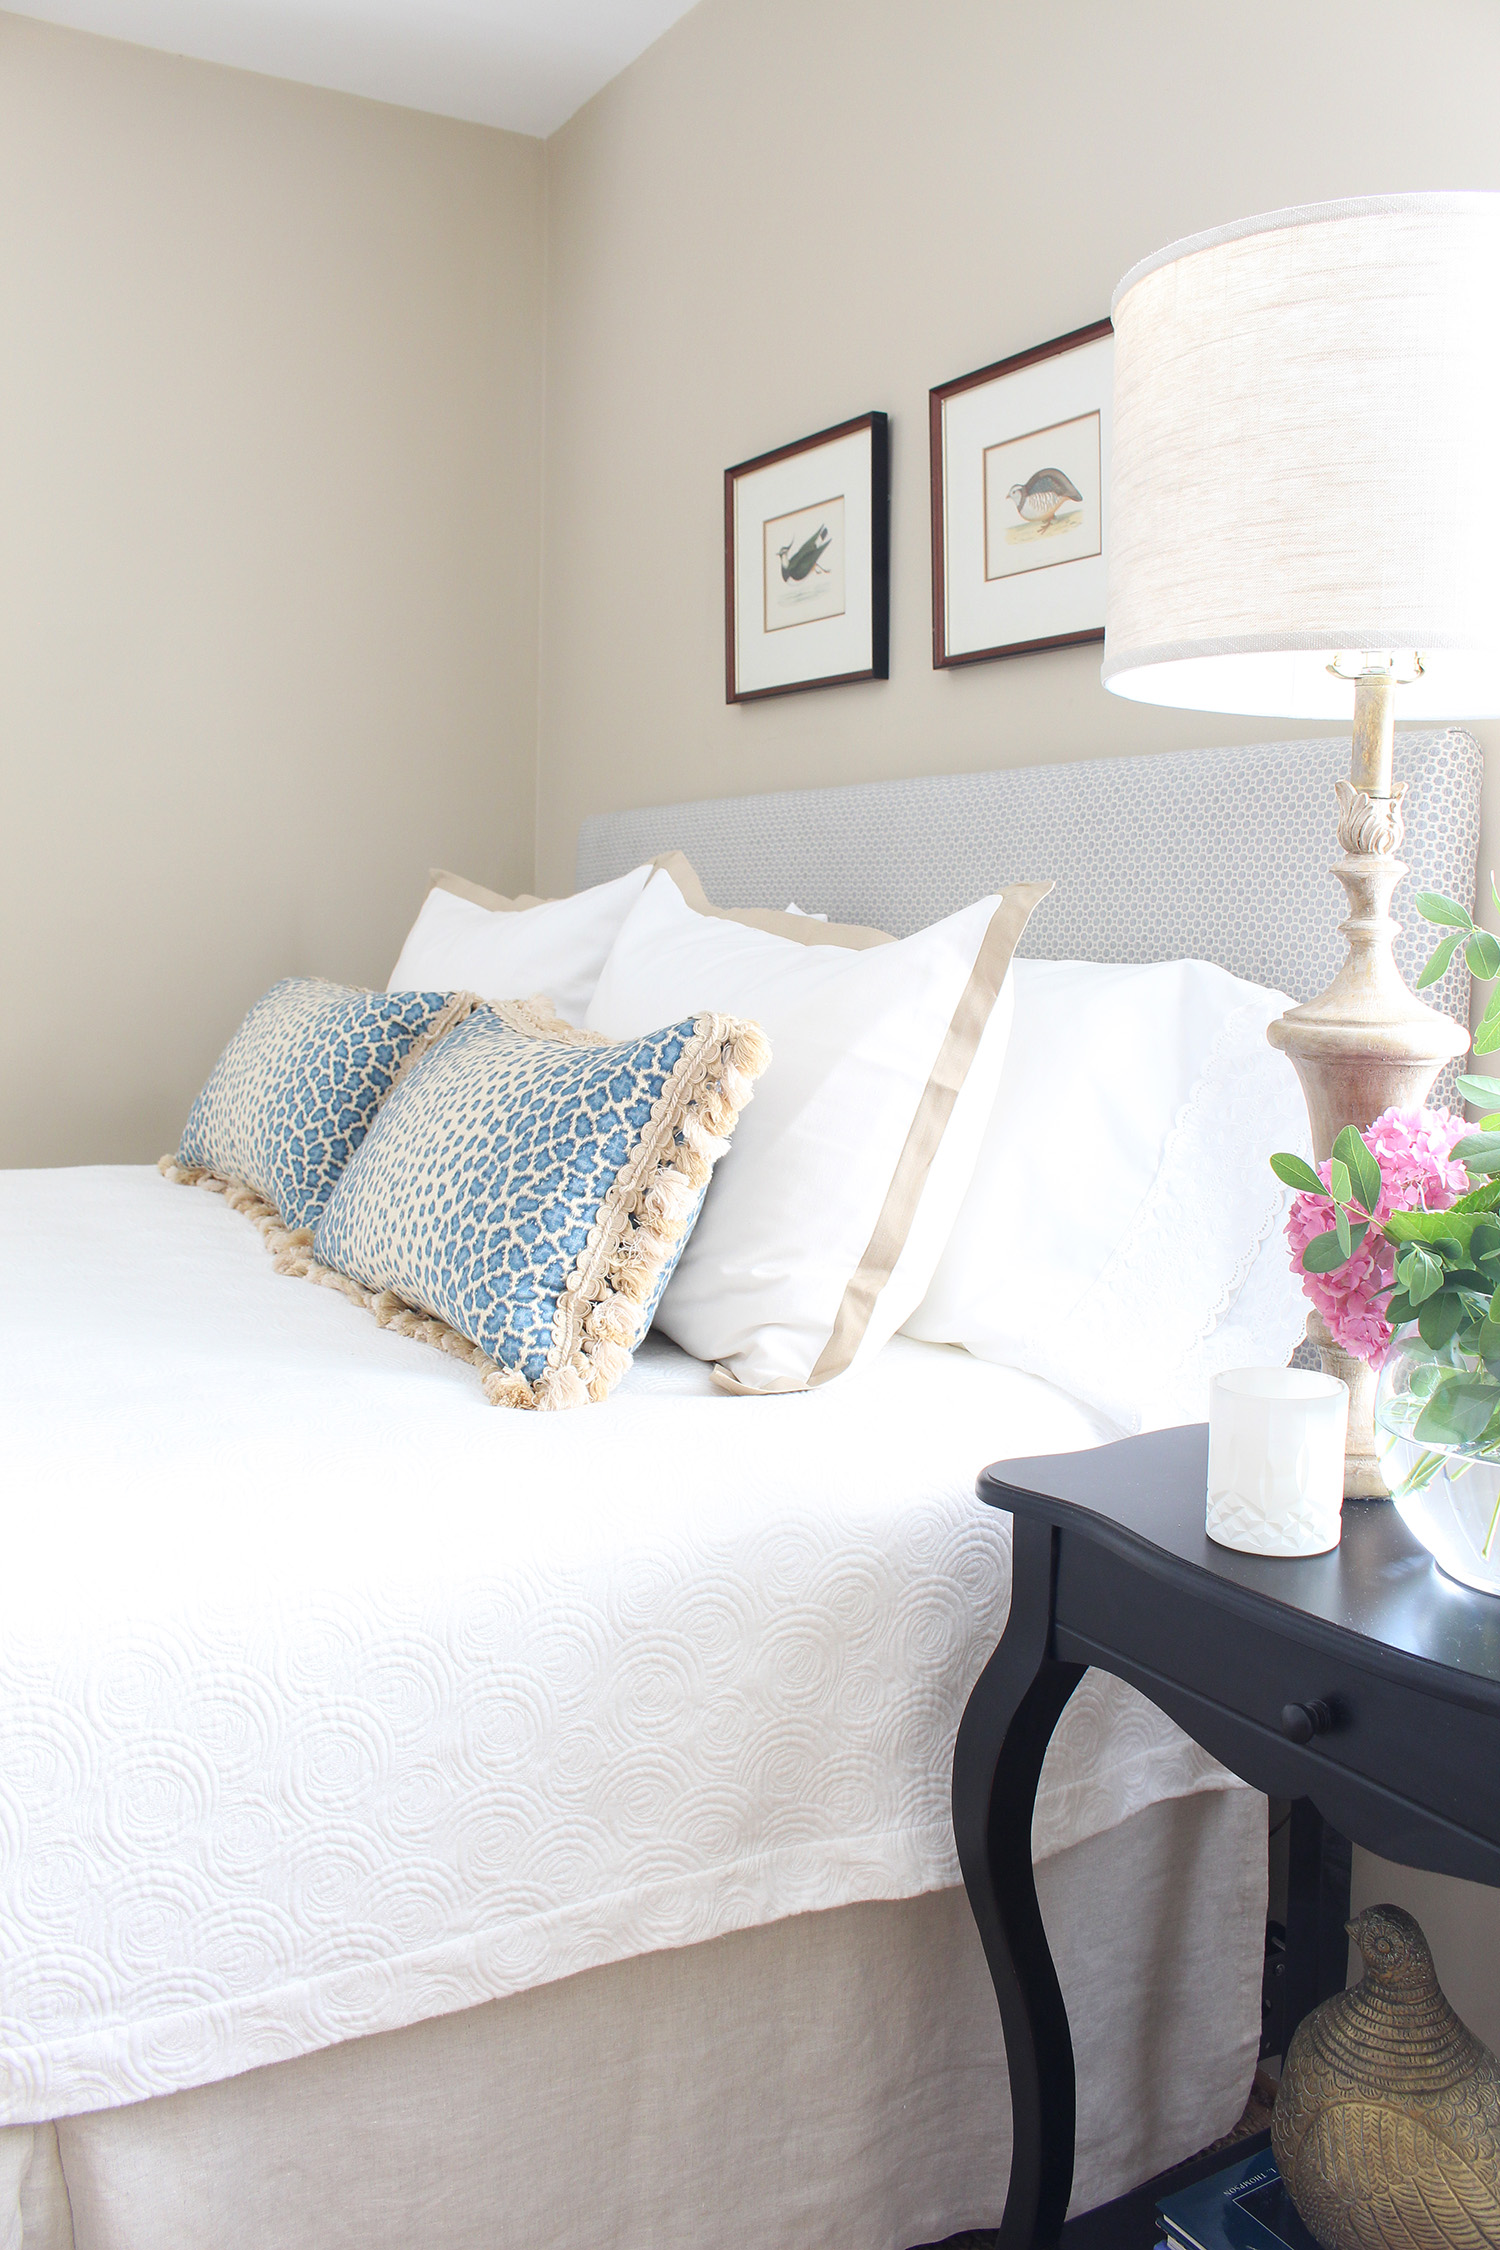 A traditional guest room gets a quick makeover with new linens, a custom headboard with fabric from Calico, and by shopping the house for the finishing touches. // DIY headboard, easy upholstered headboard